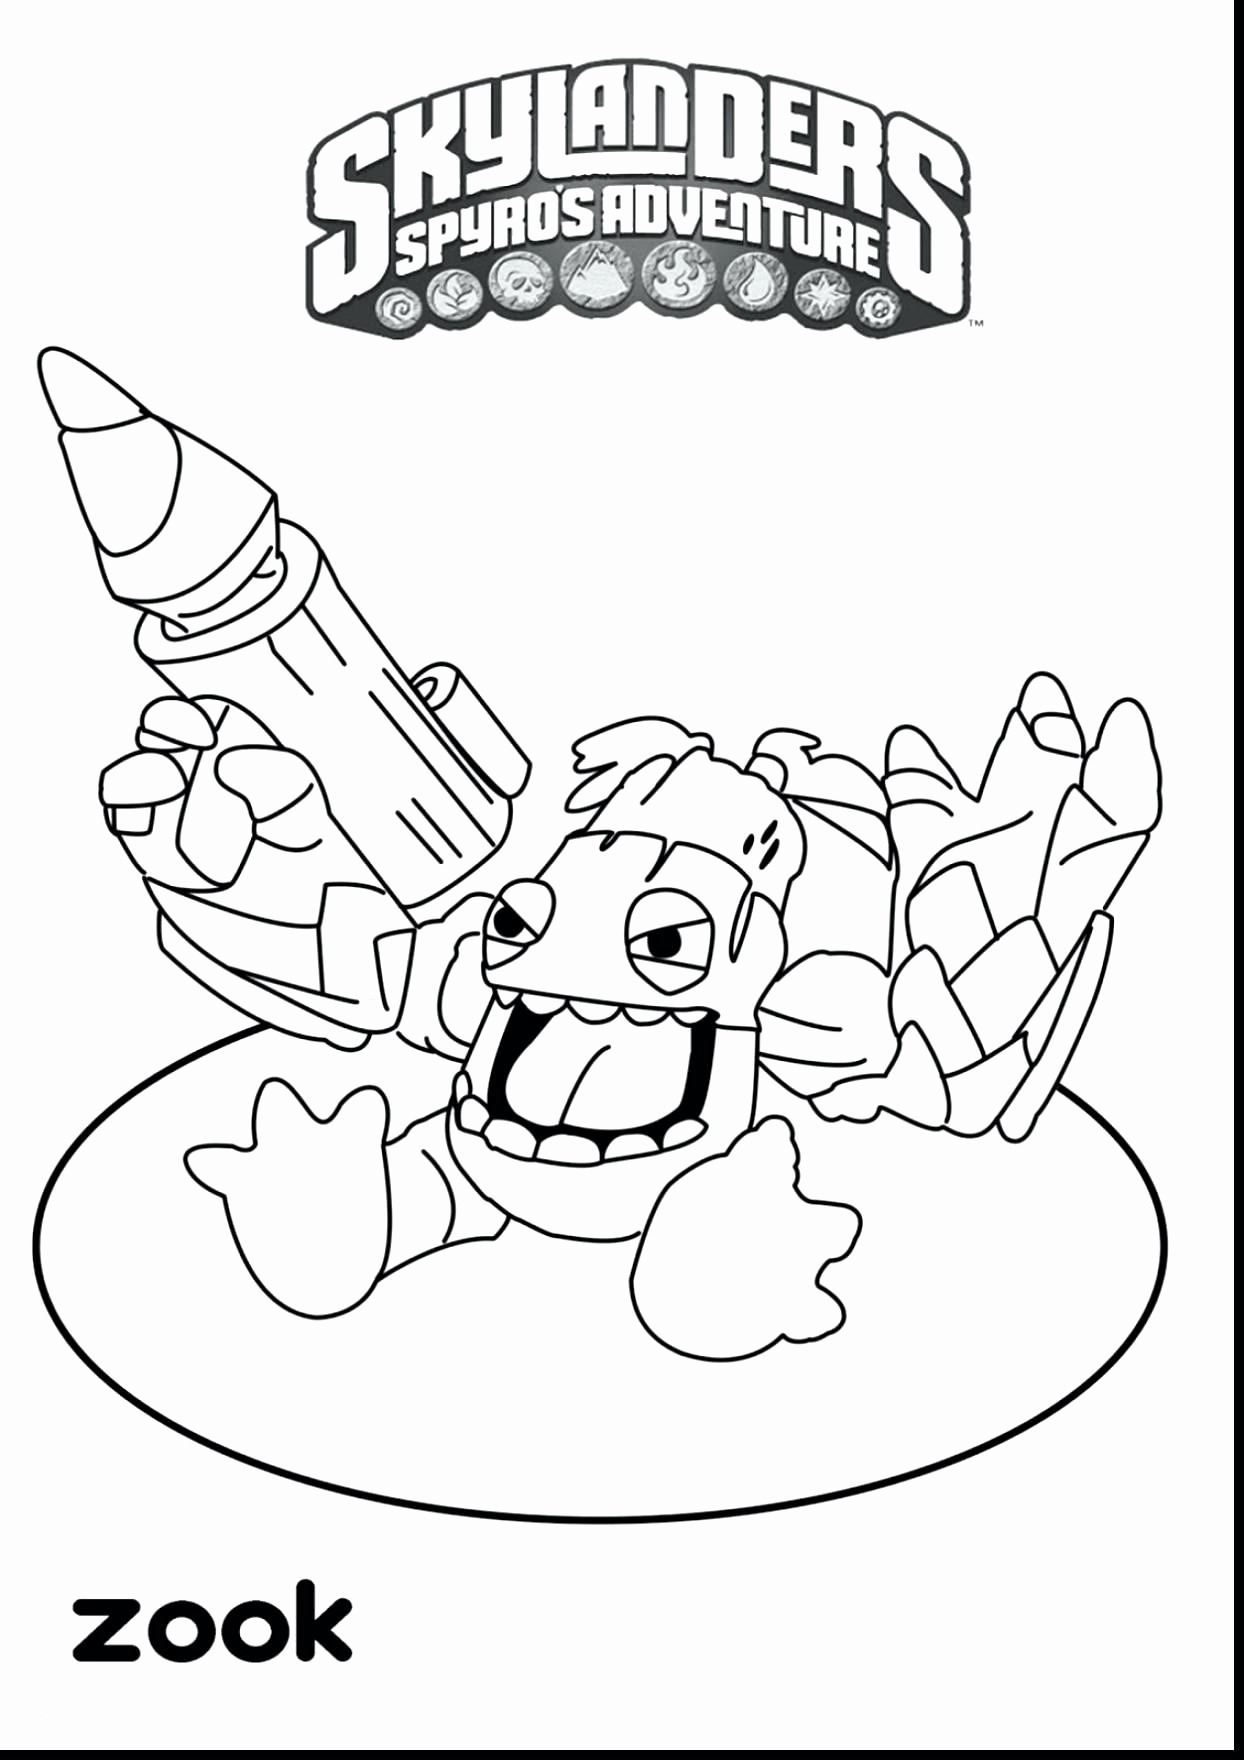 Whisker Haven Coloring Pages  Download 18n - Free For kids